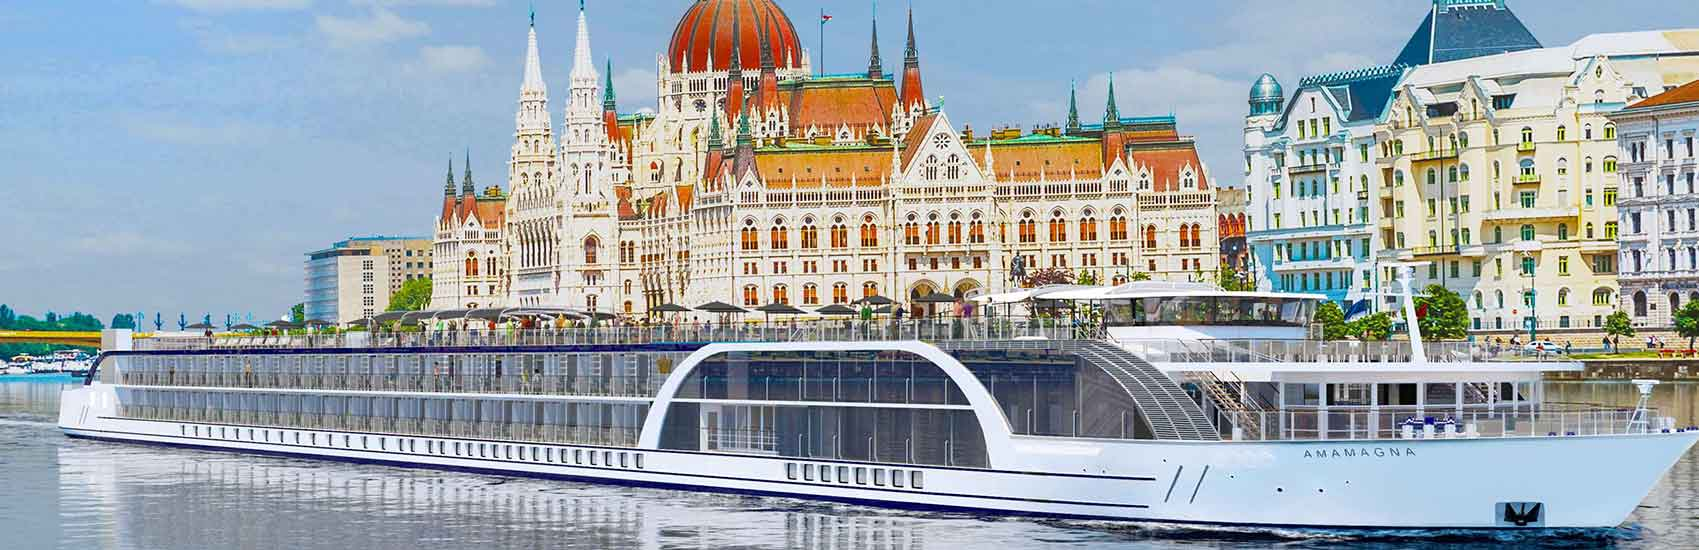 Offre Virtuoso exclusive d'AmaWaterways 2